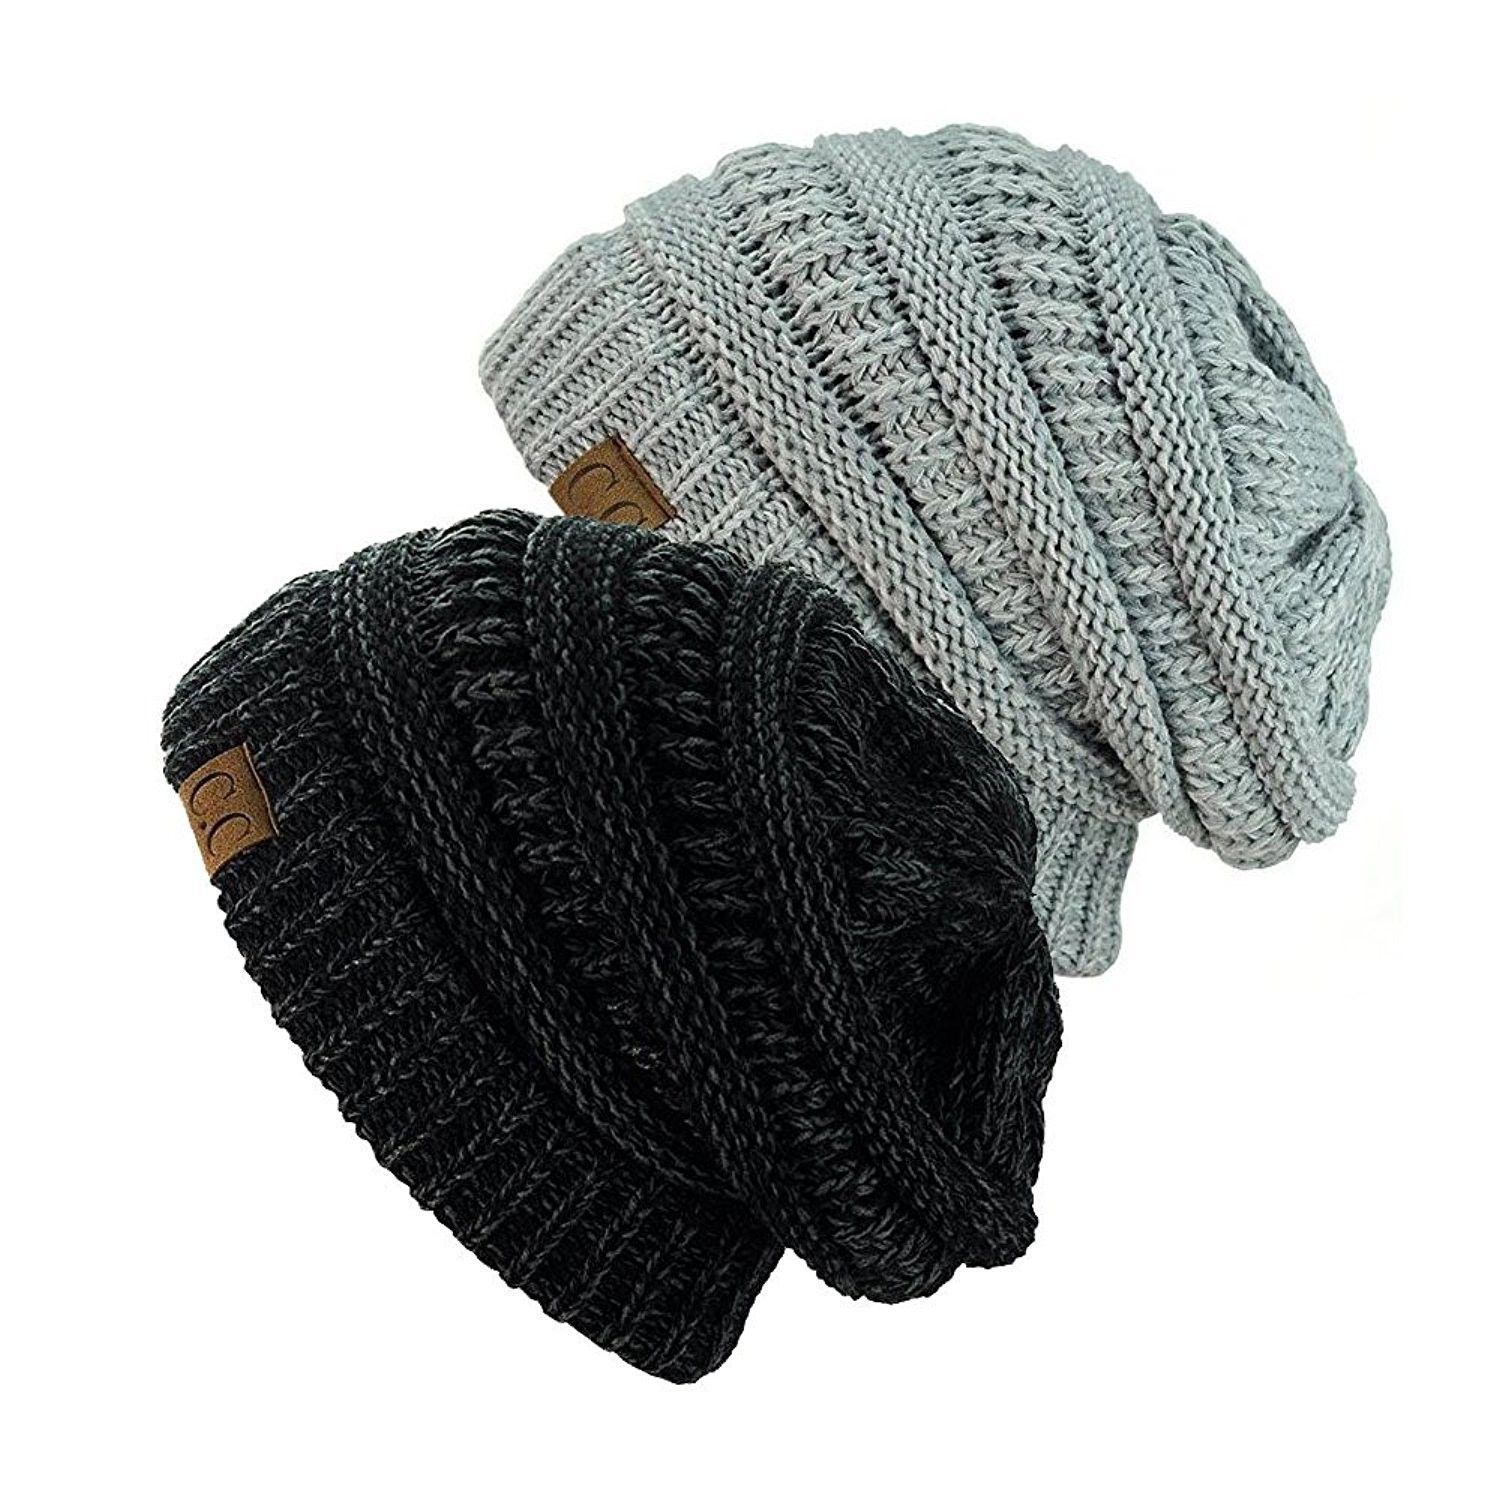 e37cf71b4ff Exclusive Unisex Two Tone Warm Cable Knit Thick Slouch Beanie Cap  (Black Charcoal   2 Tone Grey) - CP12NRHW0G7 - Hats   Caps